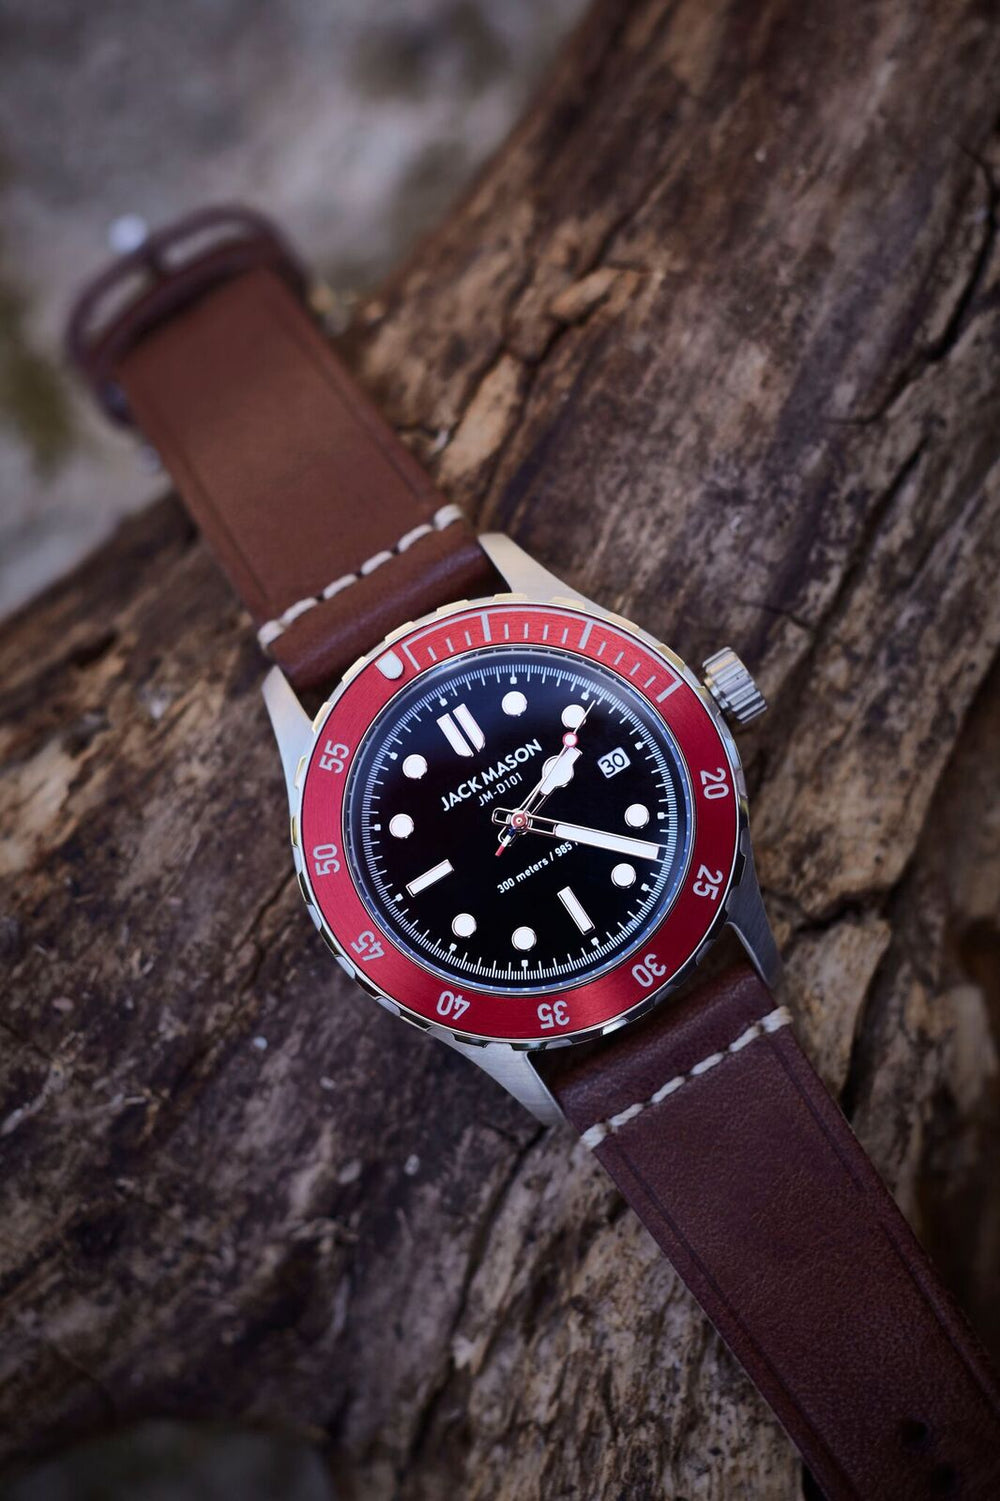 The black, red, and steel diver watch with brown leather watch strap